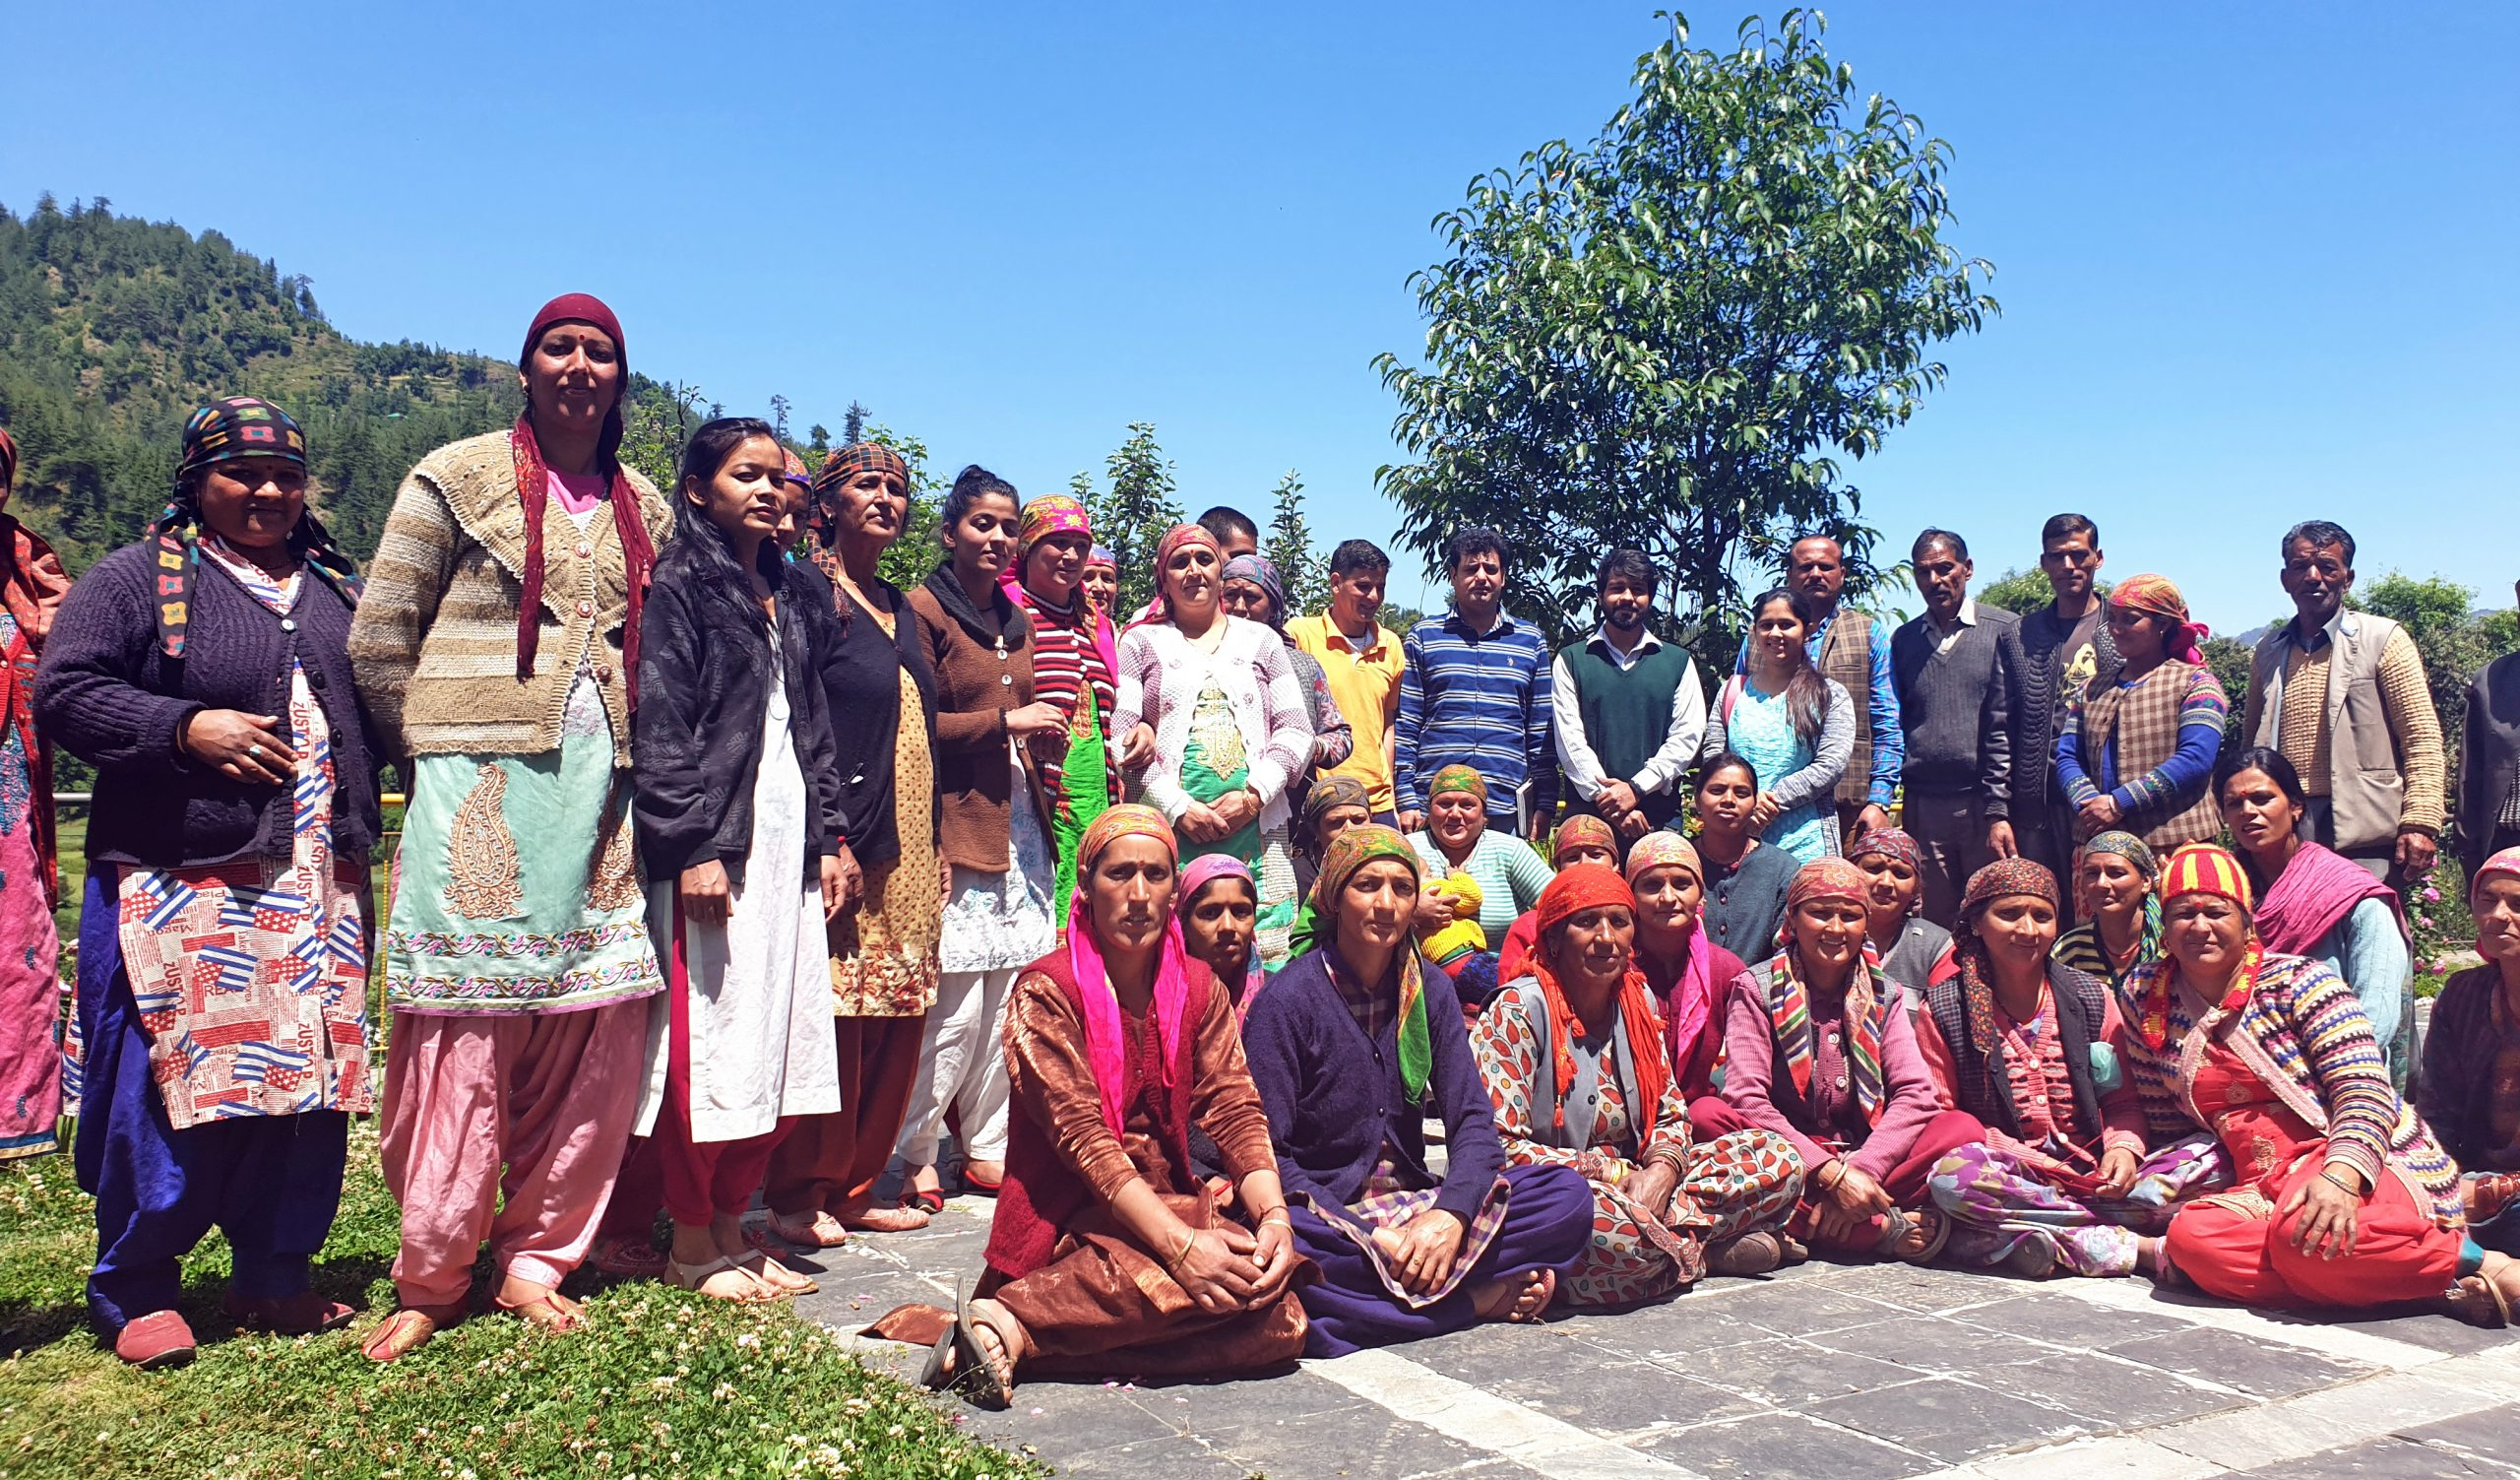 Group of farmers and villagers in India supported by the government.